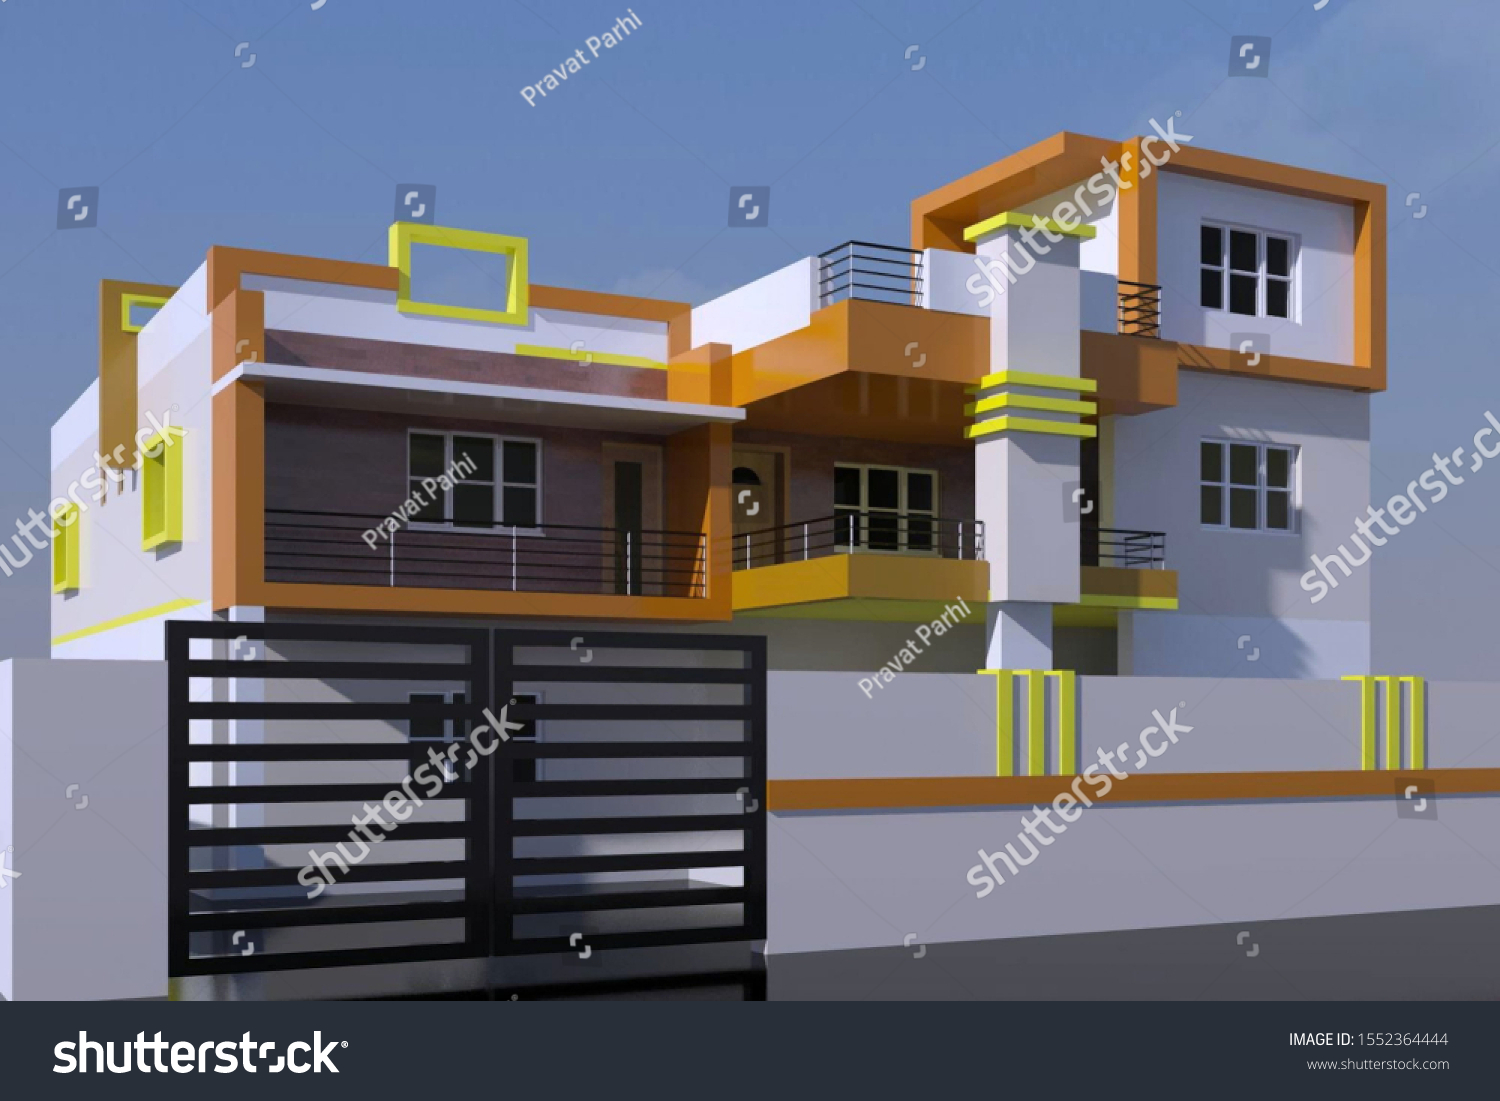 3d Design Indian Style Small Residential Stock Illustration 1552364444,Small House House Plans 2020